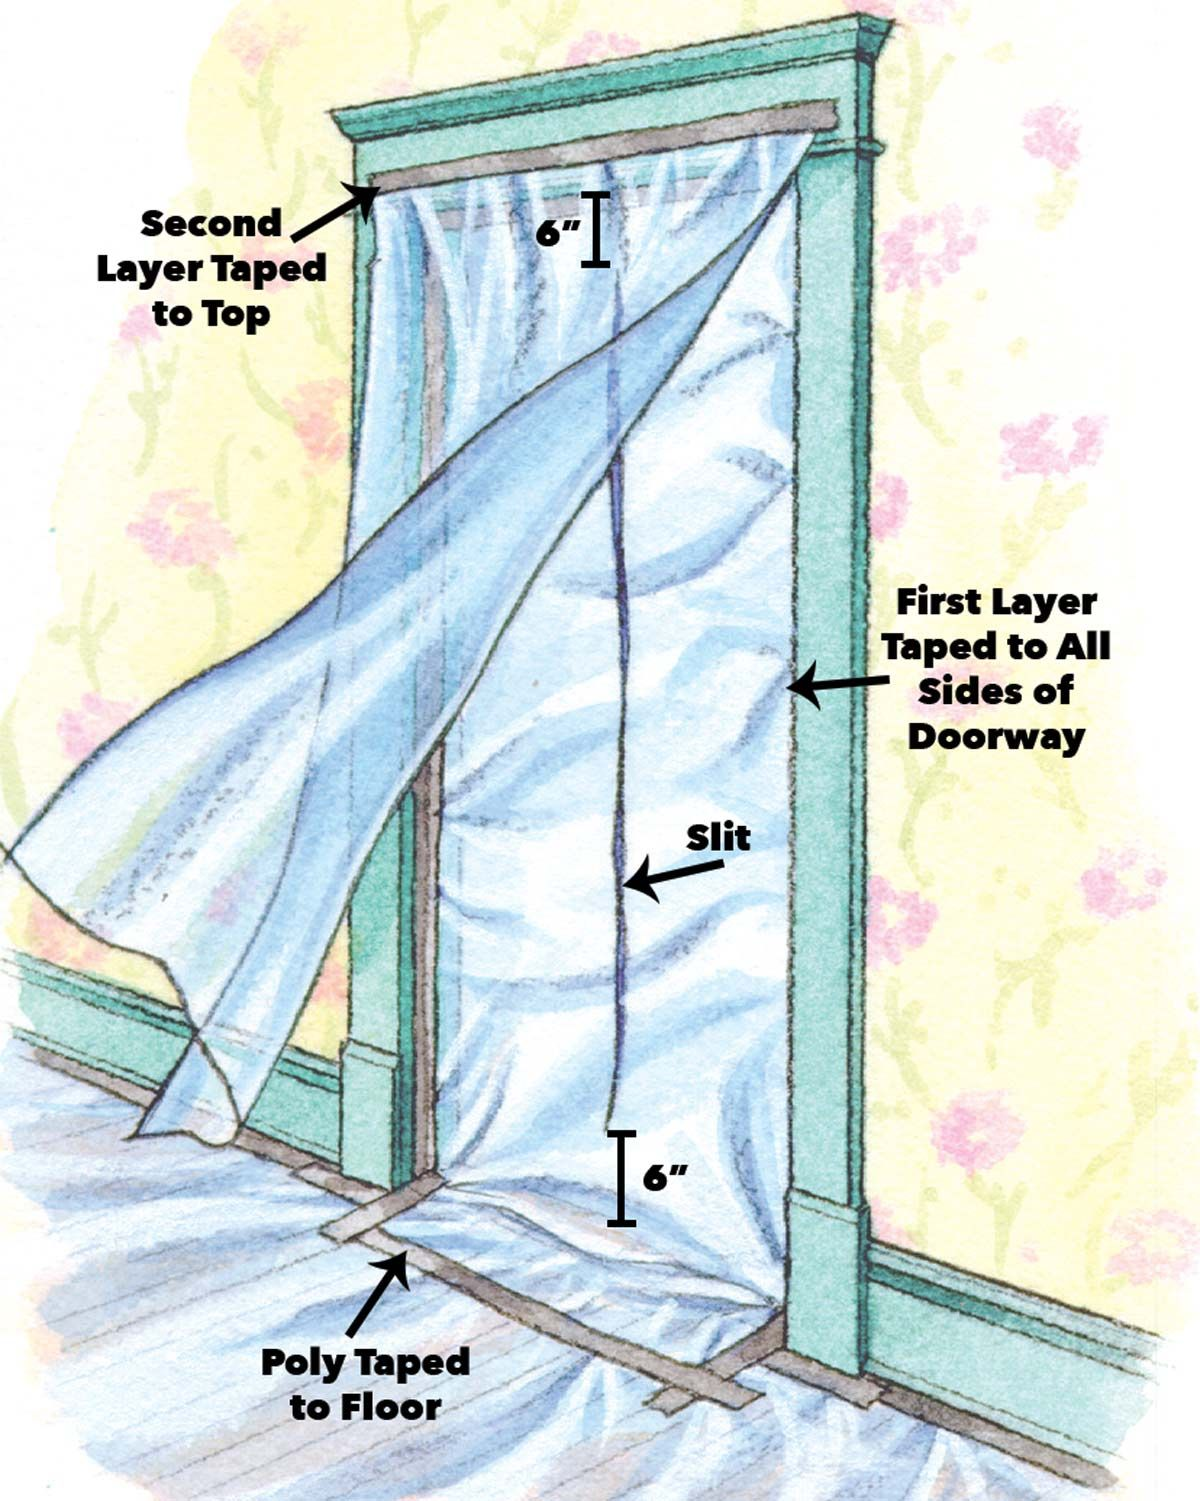 How To Remove Lead Paint Safely Lead Paint Lead Paint Removal Paint Remover